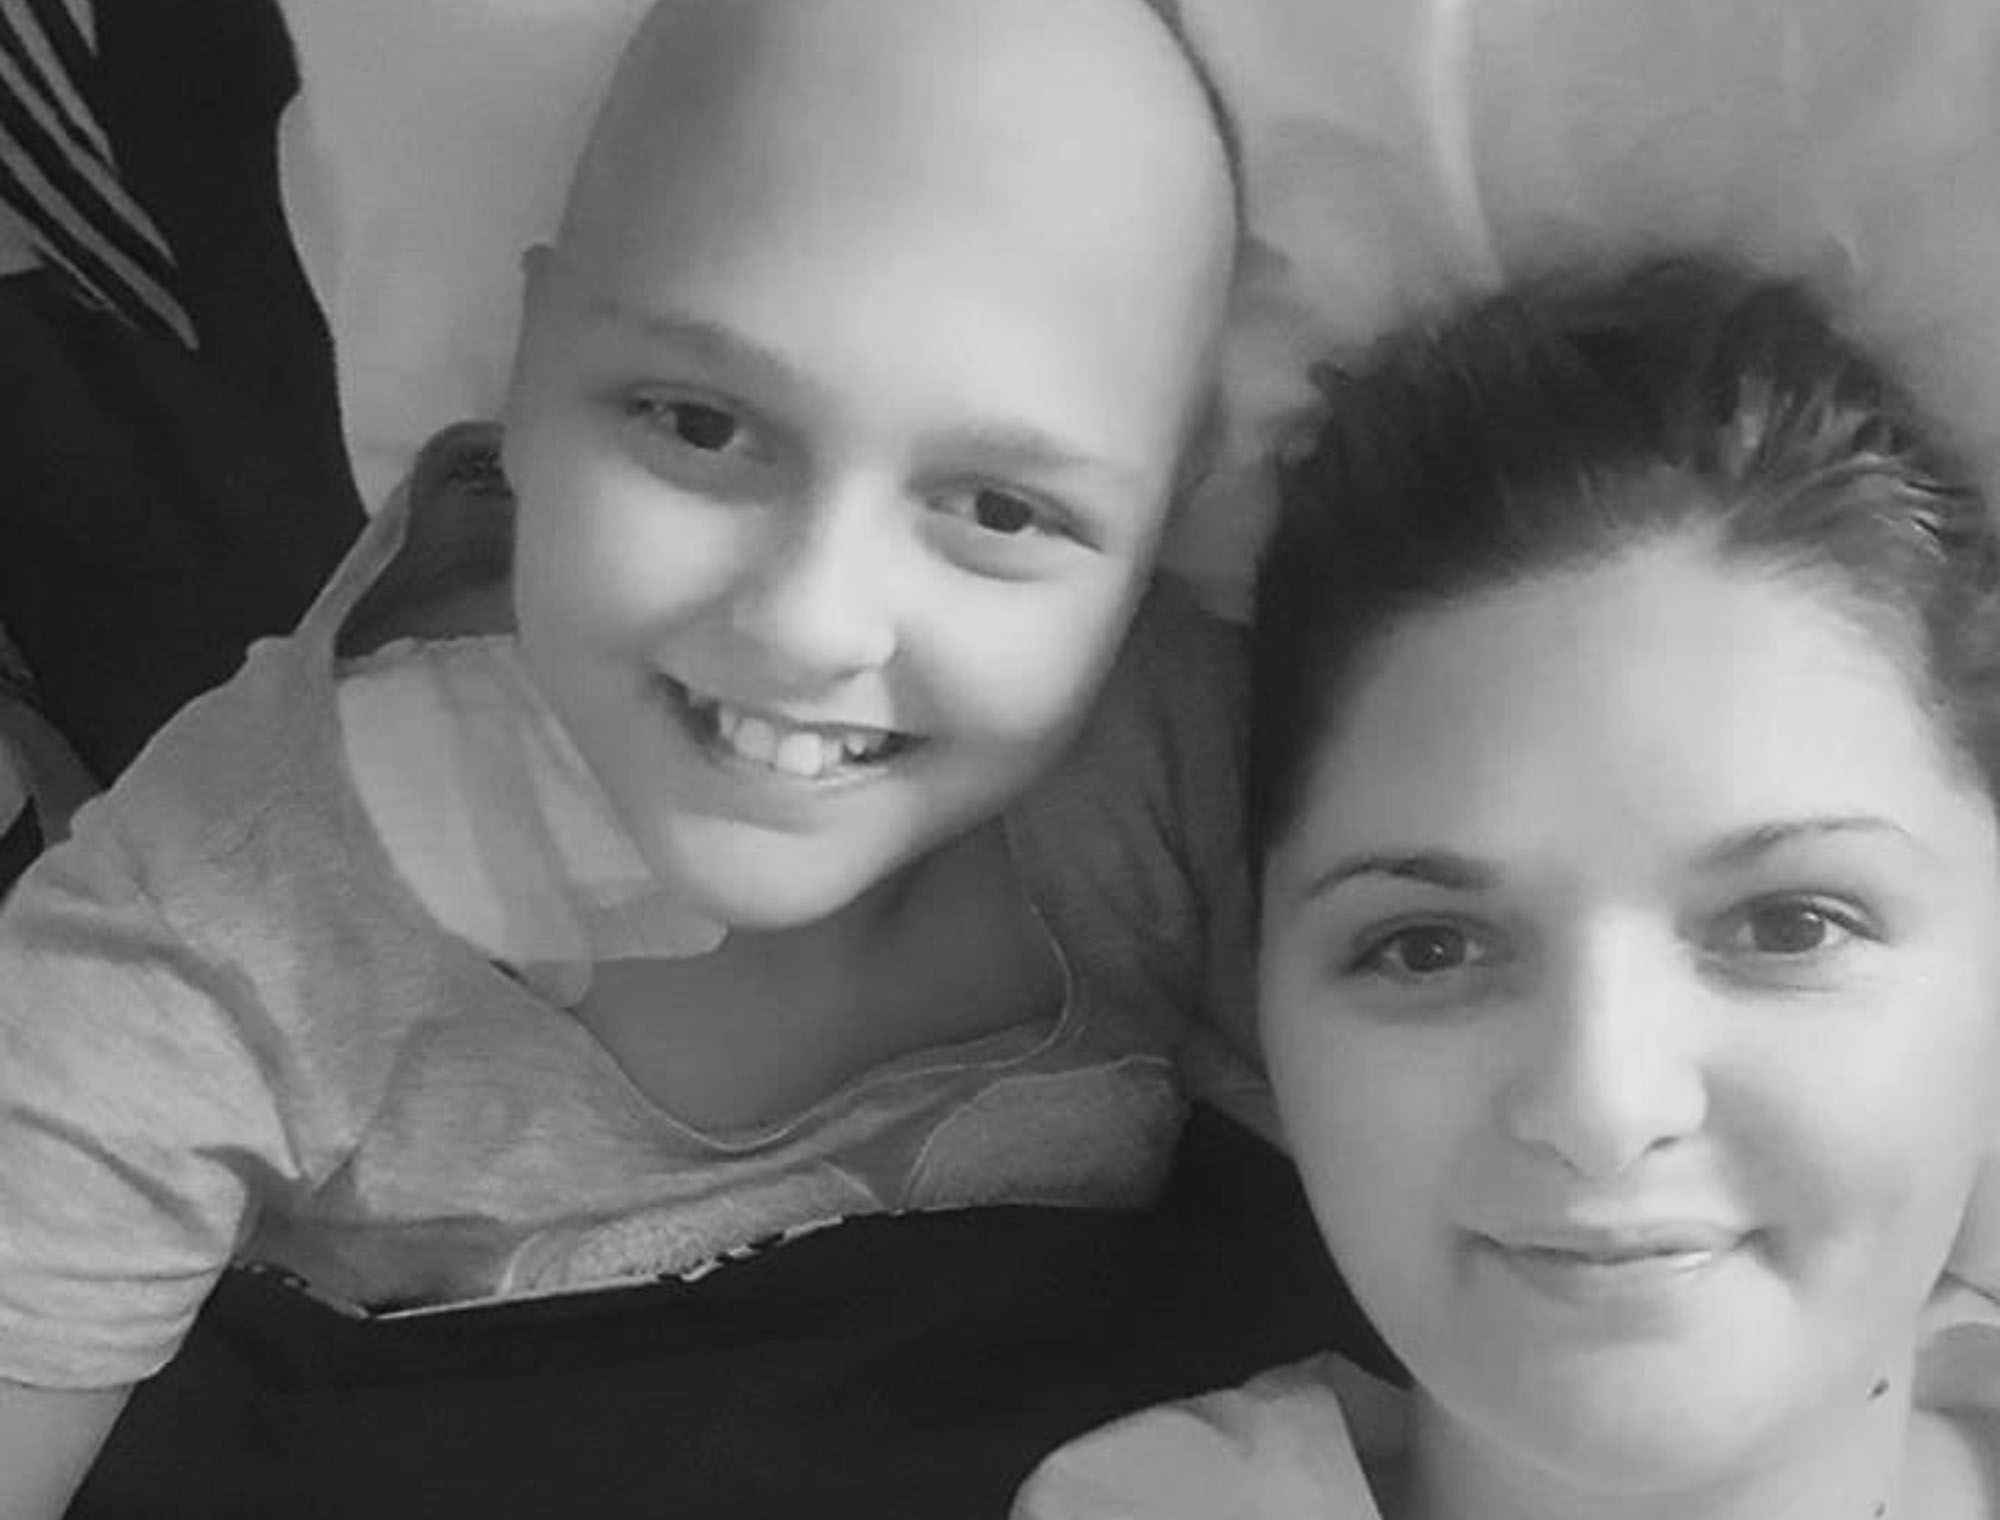 Cancer Girl Mum Spends Donations On Luxury Shopping